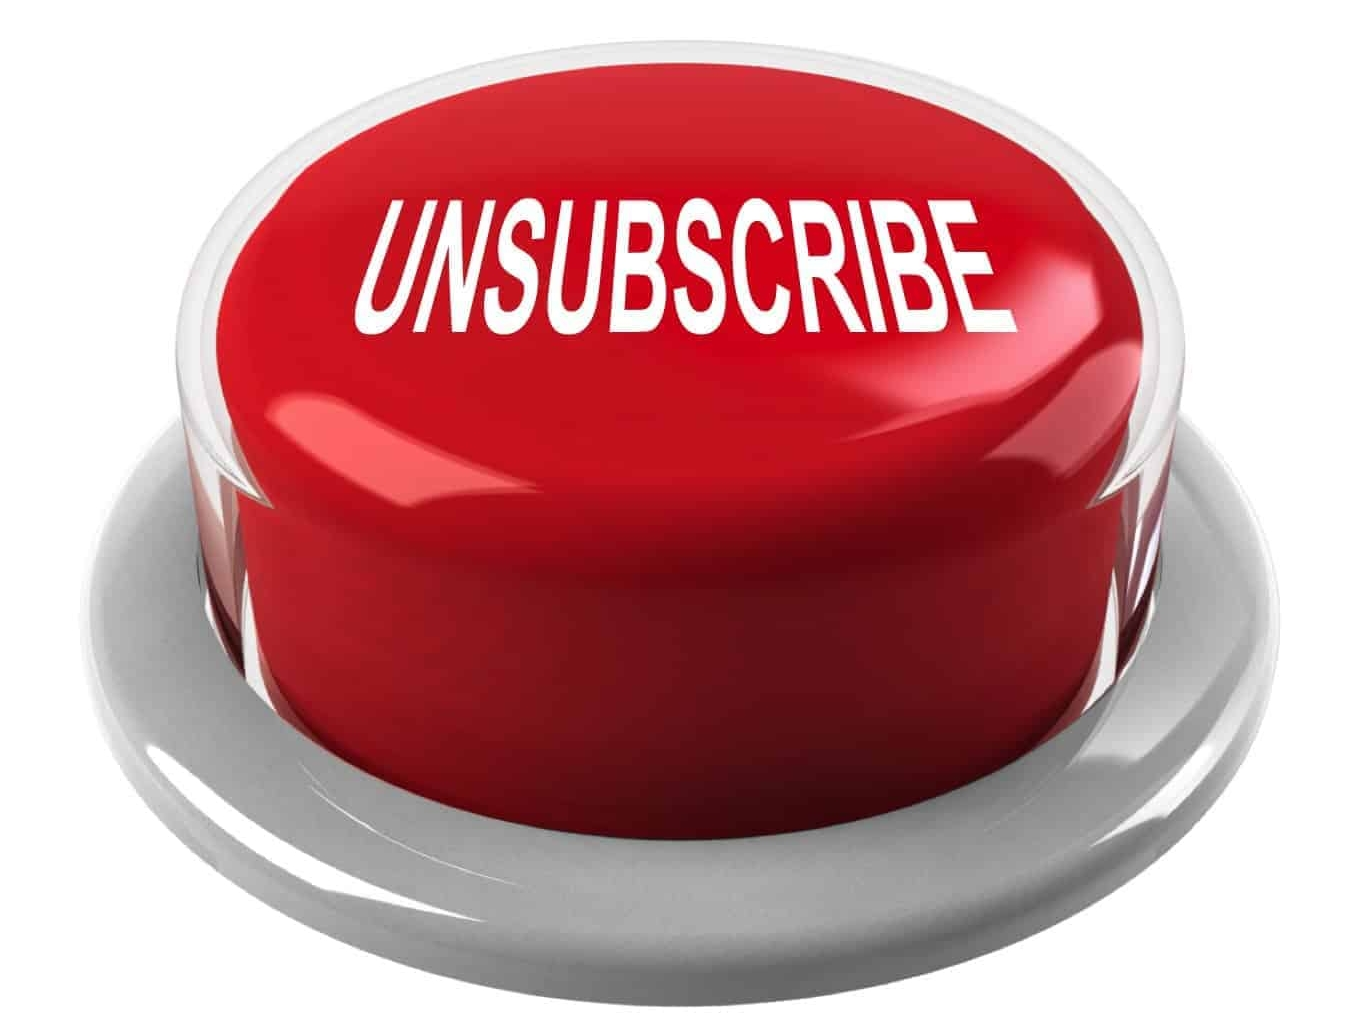 unsubscribe-button-email-marketing.jpg